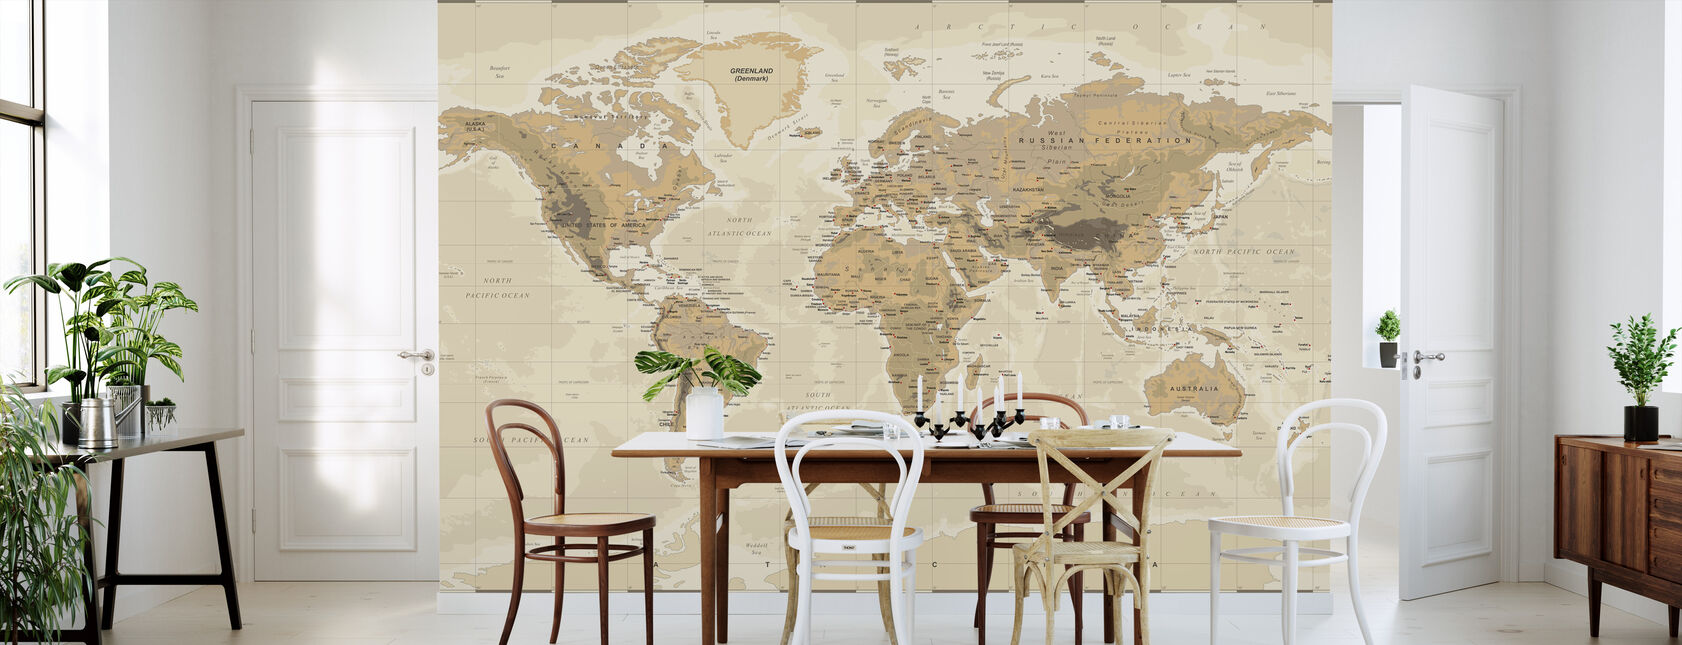 Full Wall World Map.World Maps Trendy Wall Murals Photowall